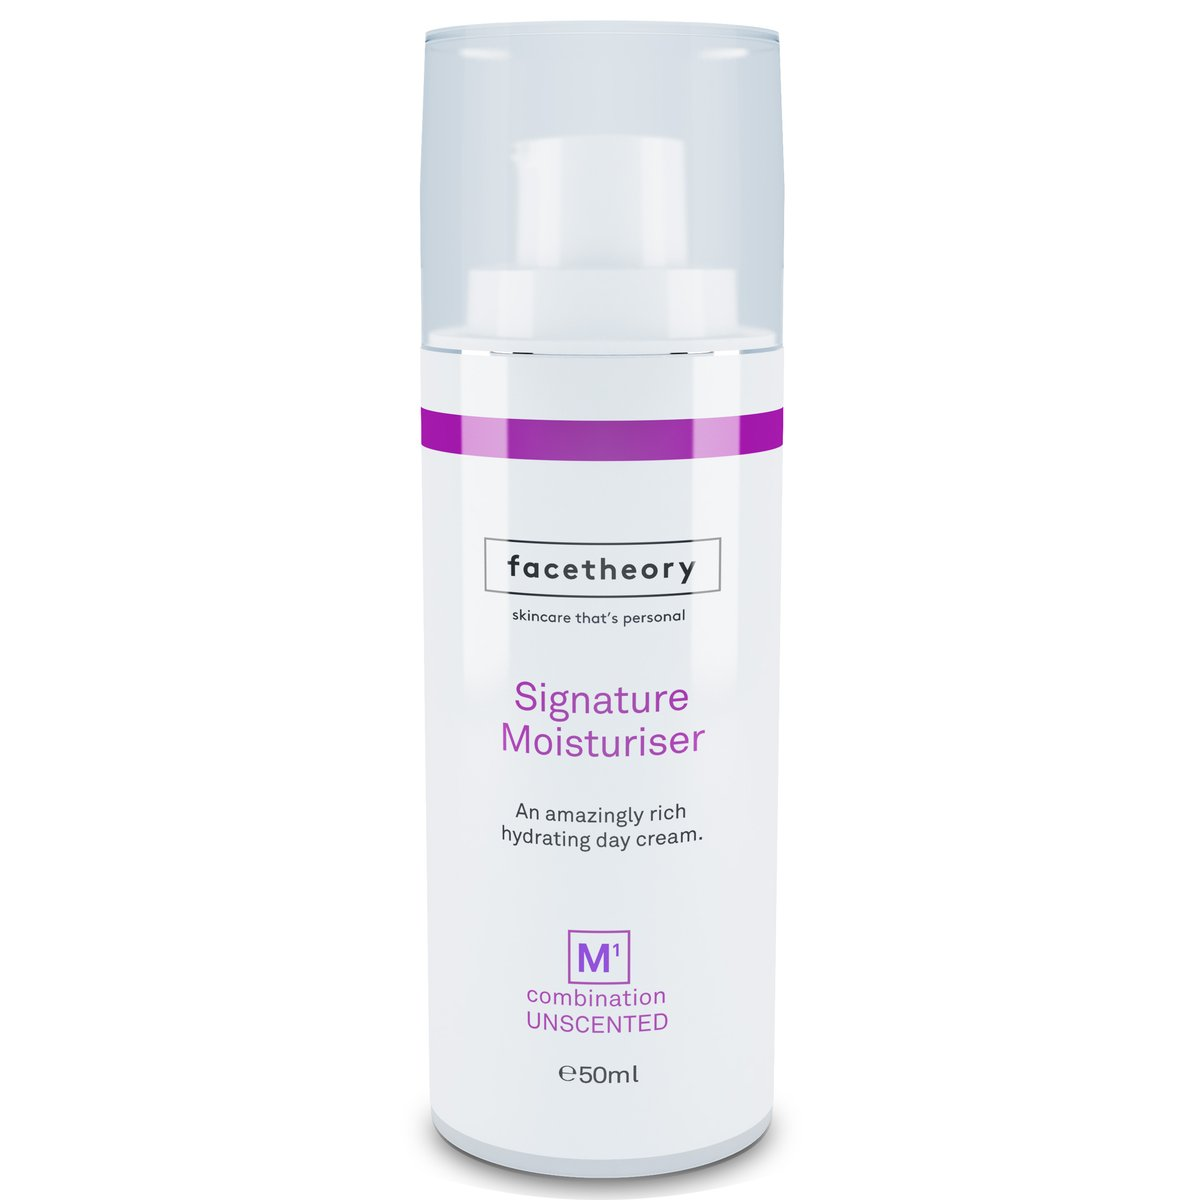 facetheory Signature Moisturiser M1